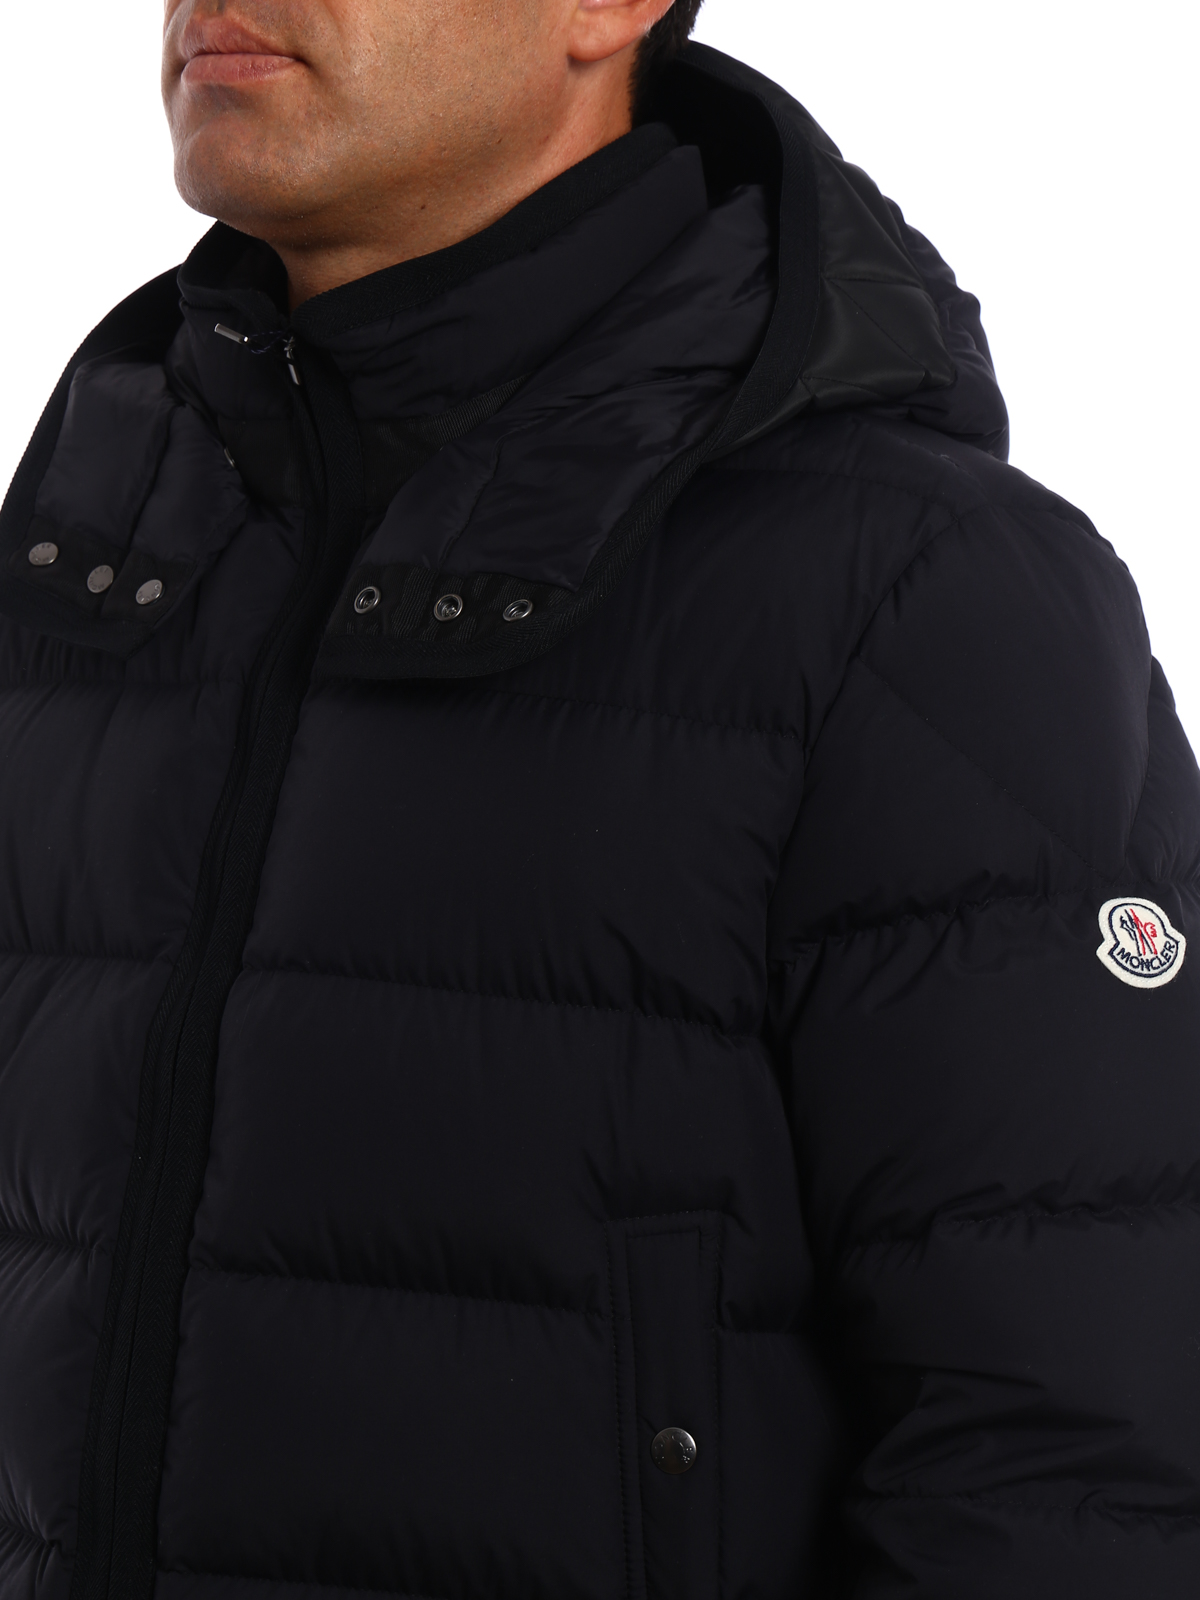 7d331a157 Moncler - Tanguy hooded puffer jacket - padded jackets - C2 091 ...